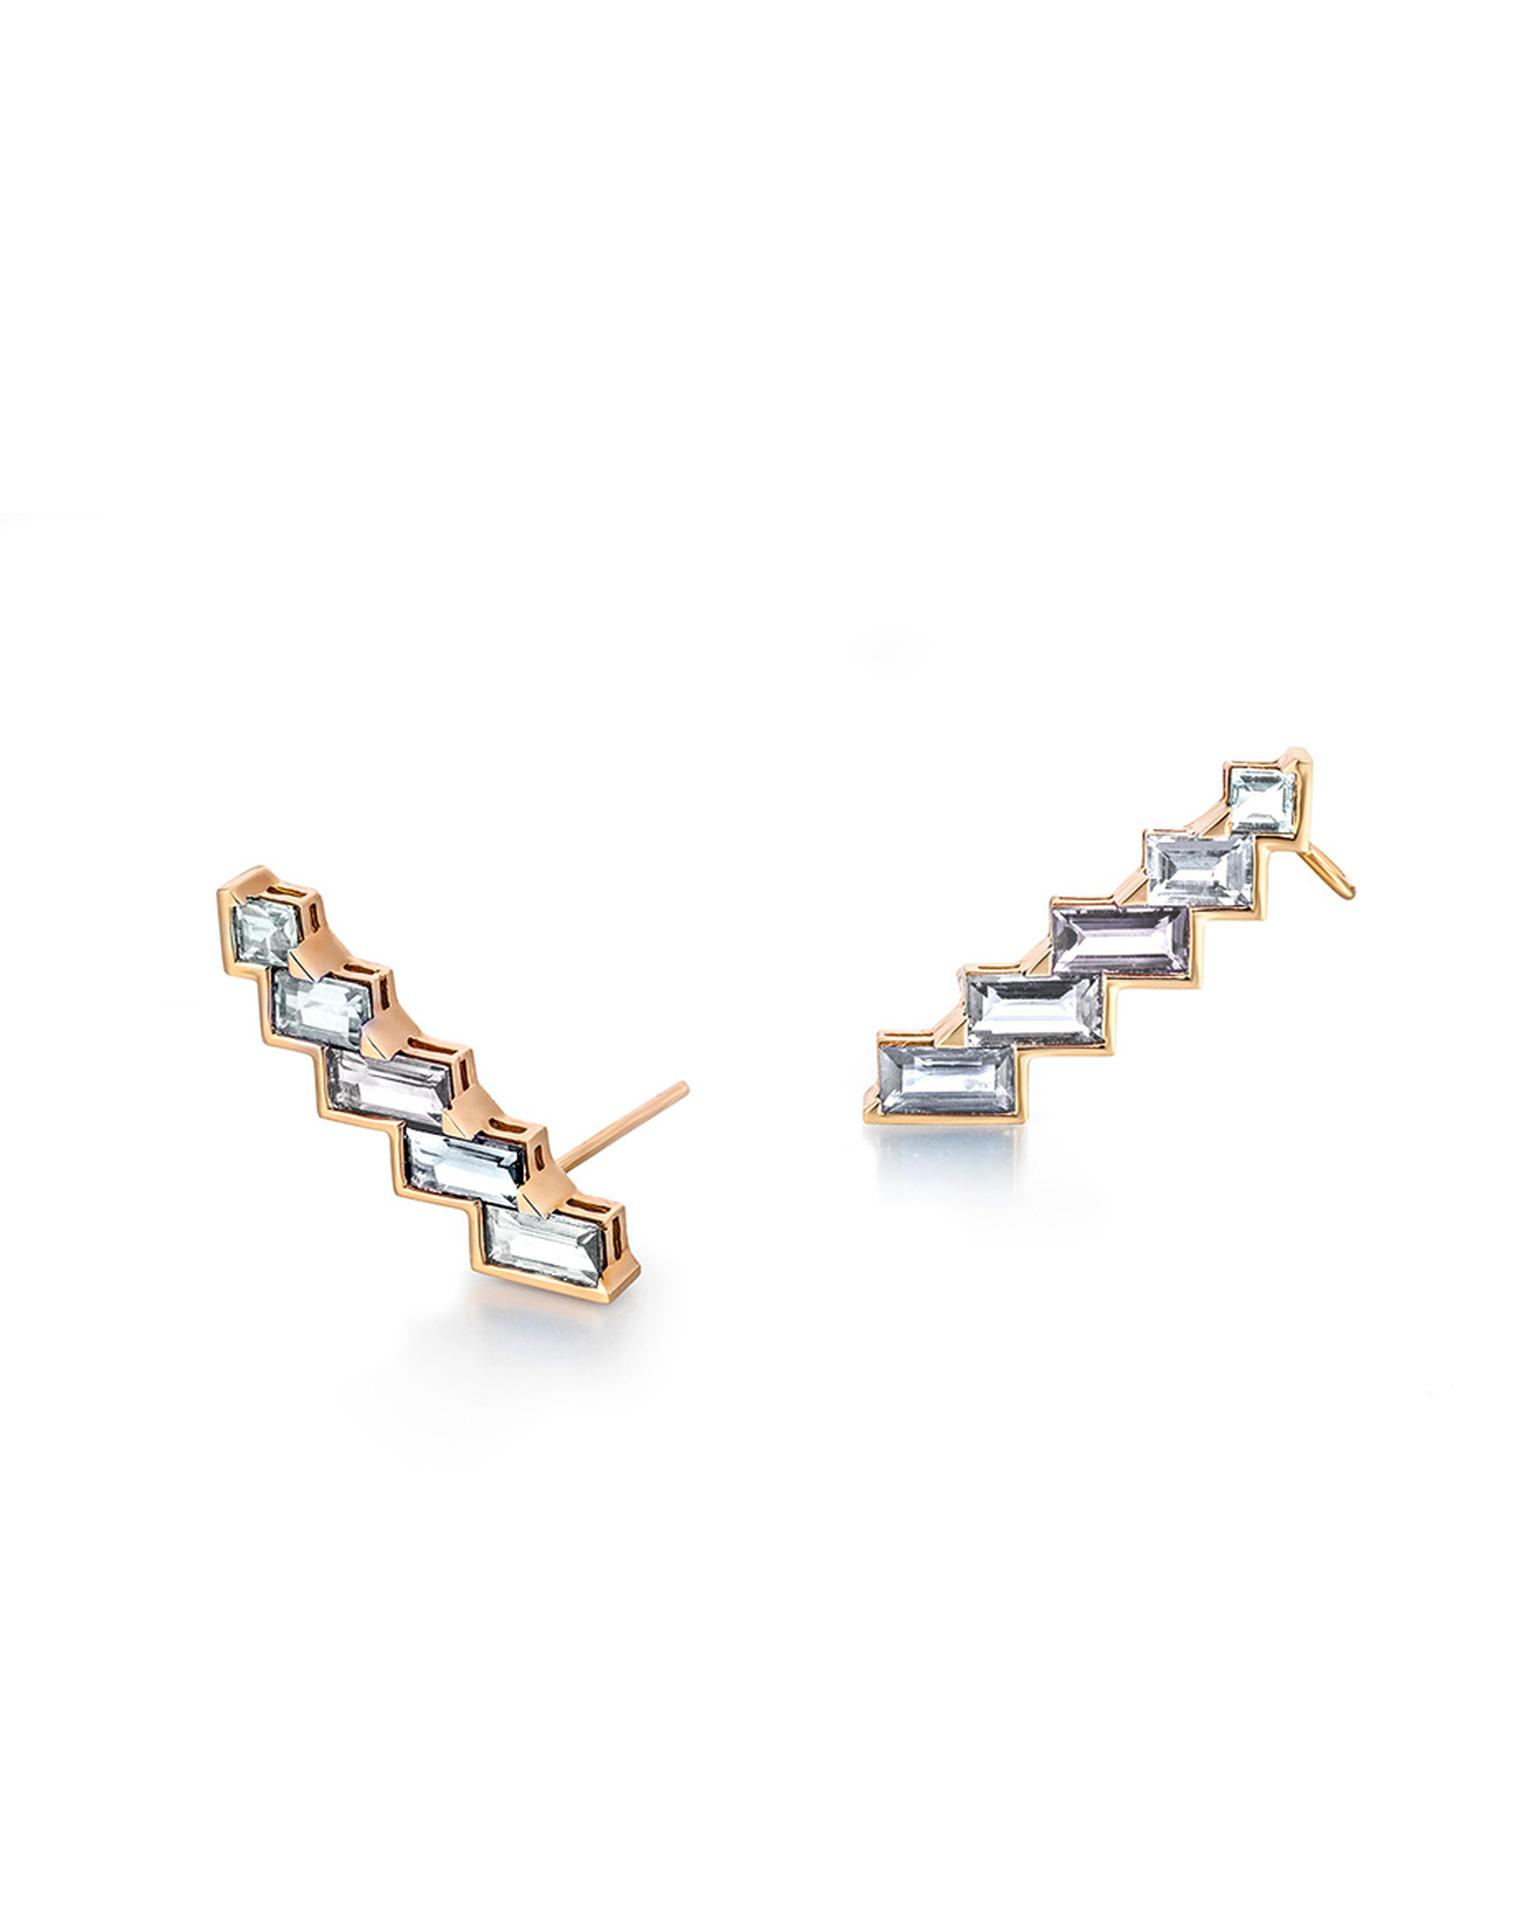 Tomasz Donocik has designed a selection of cuff earrings for the Electric Night collection that can be mixed and matched with the drop earrings.